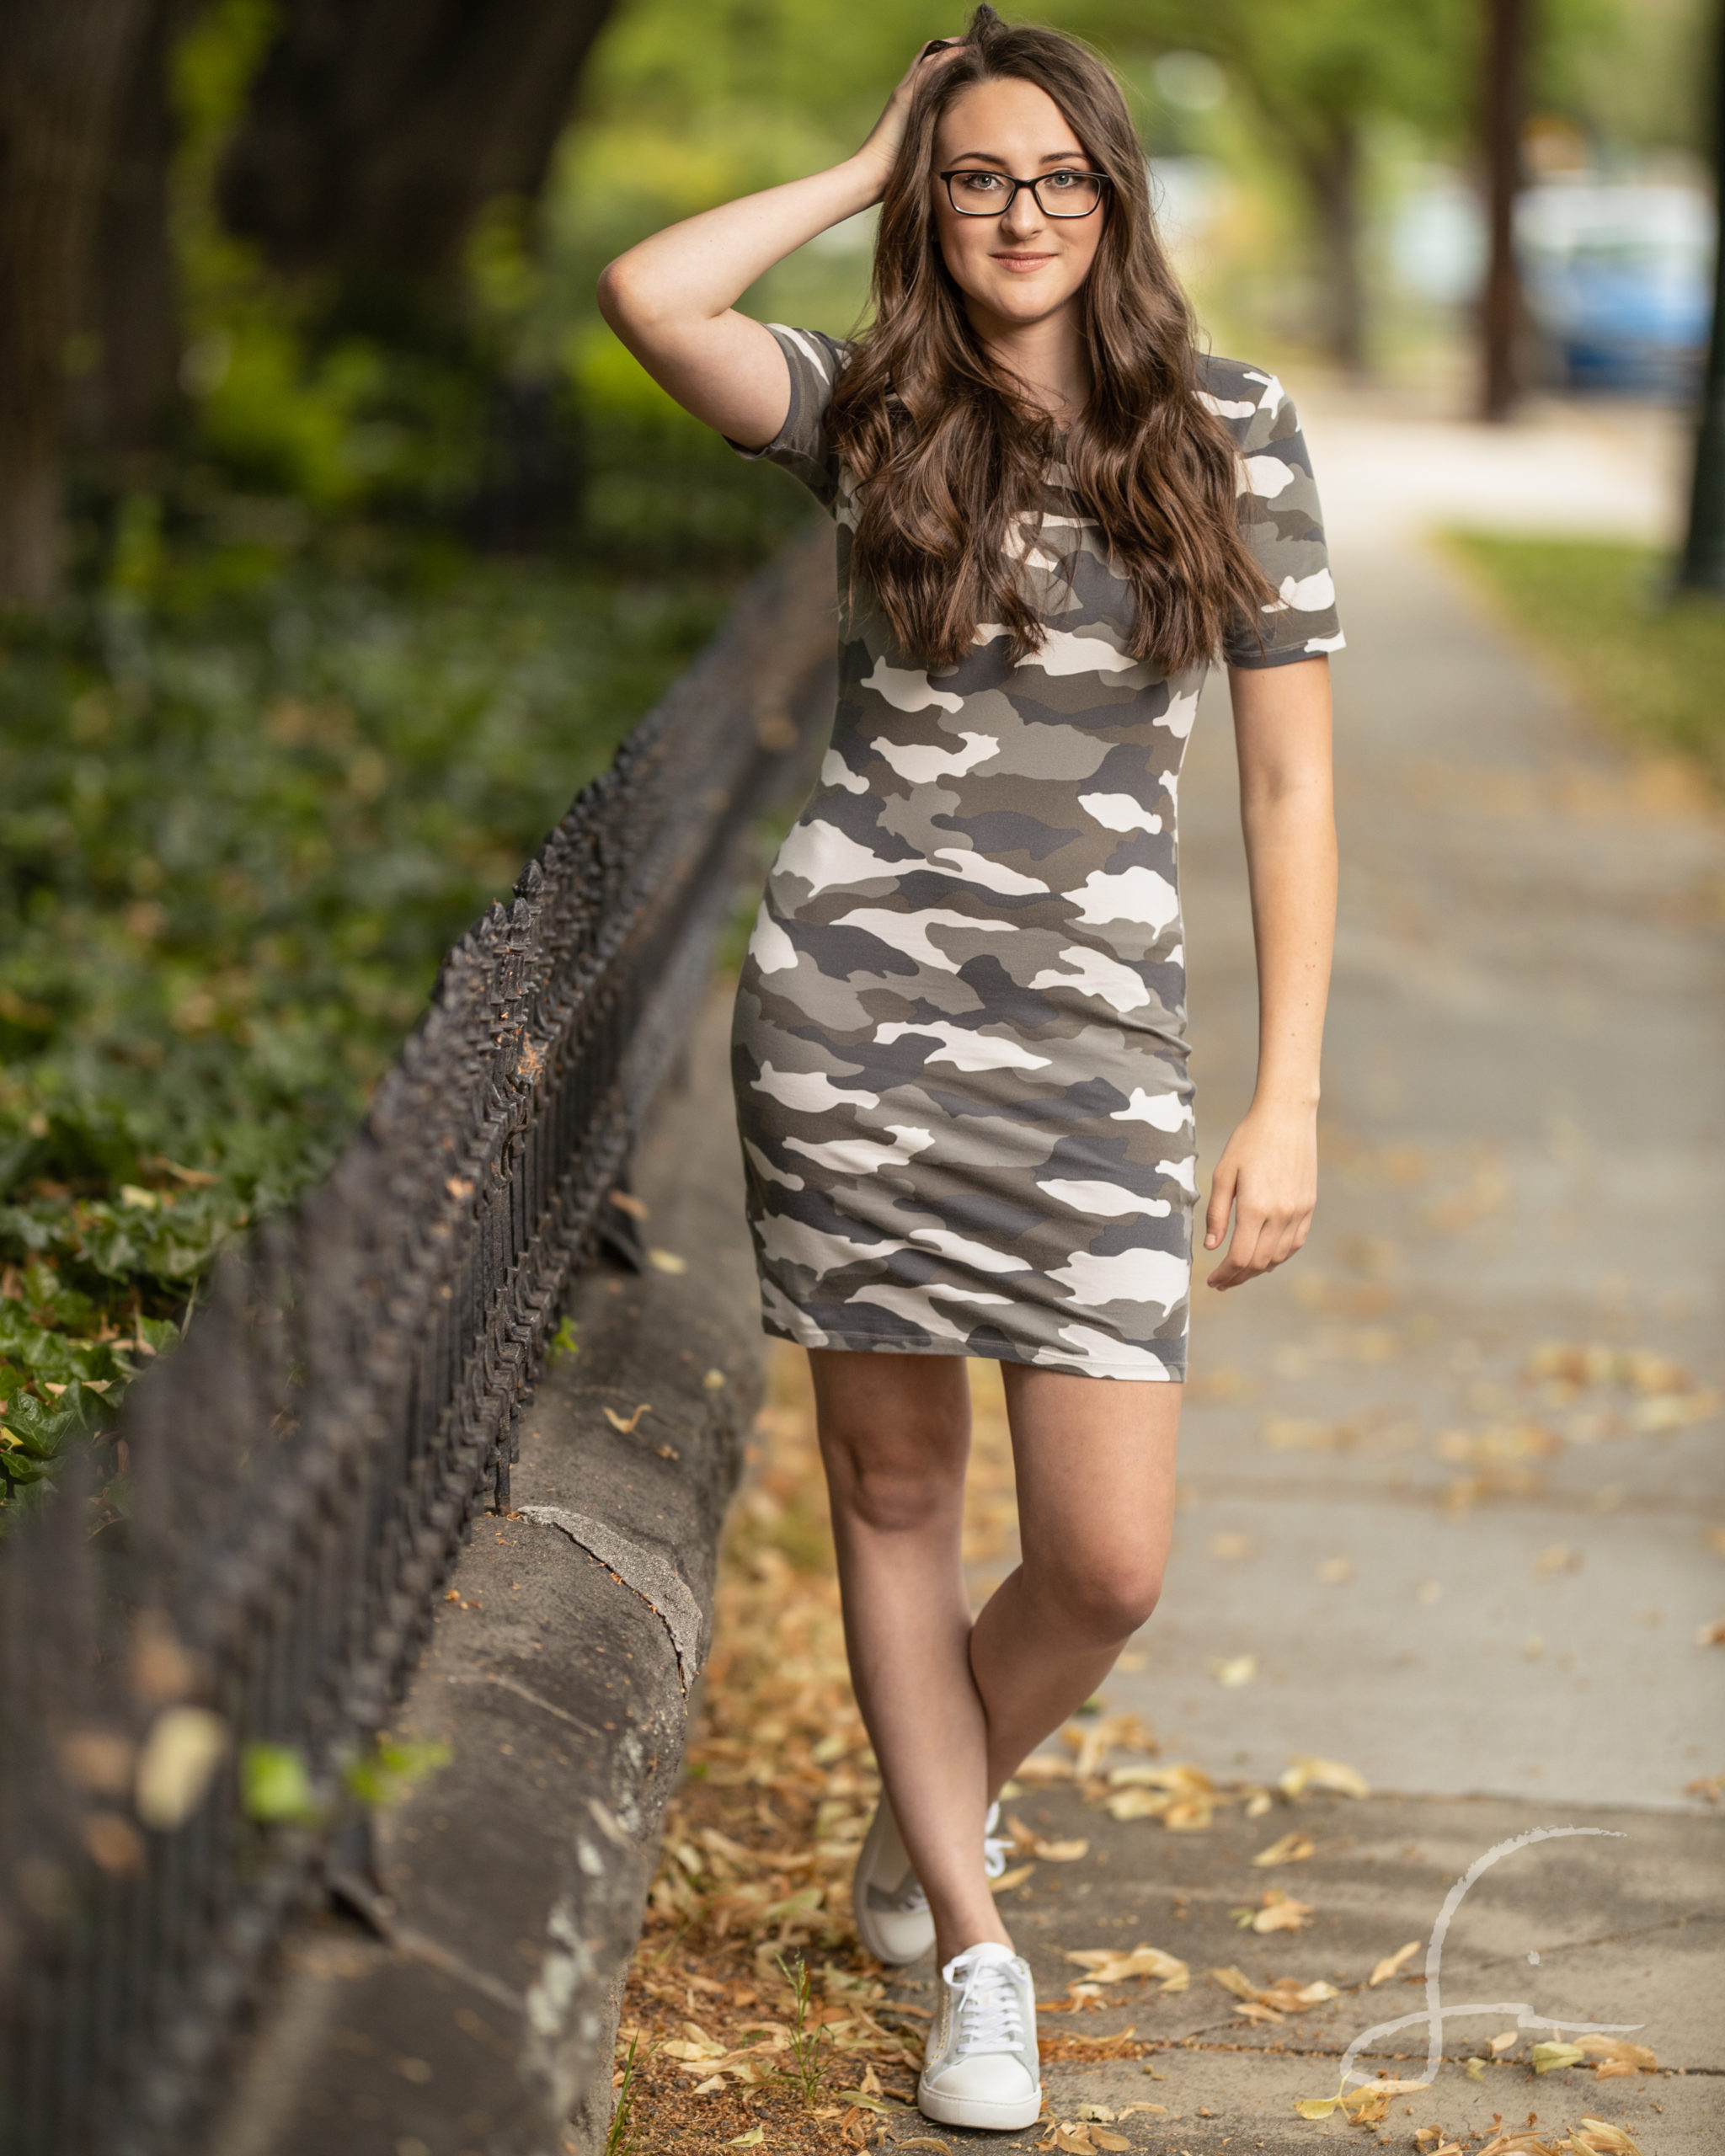 teen girl in a camouflage knit dress